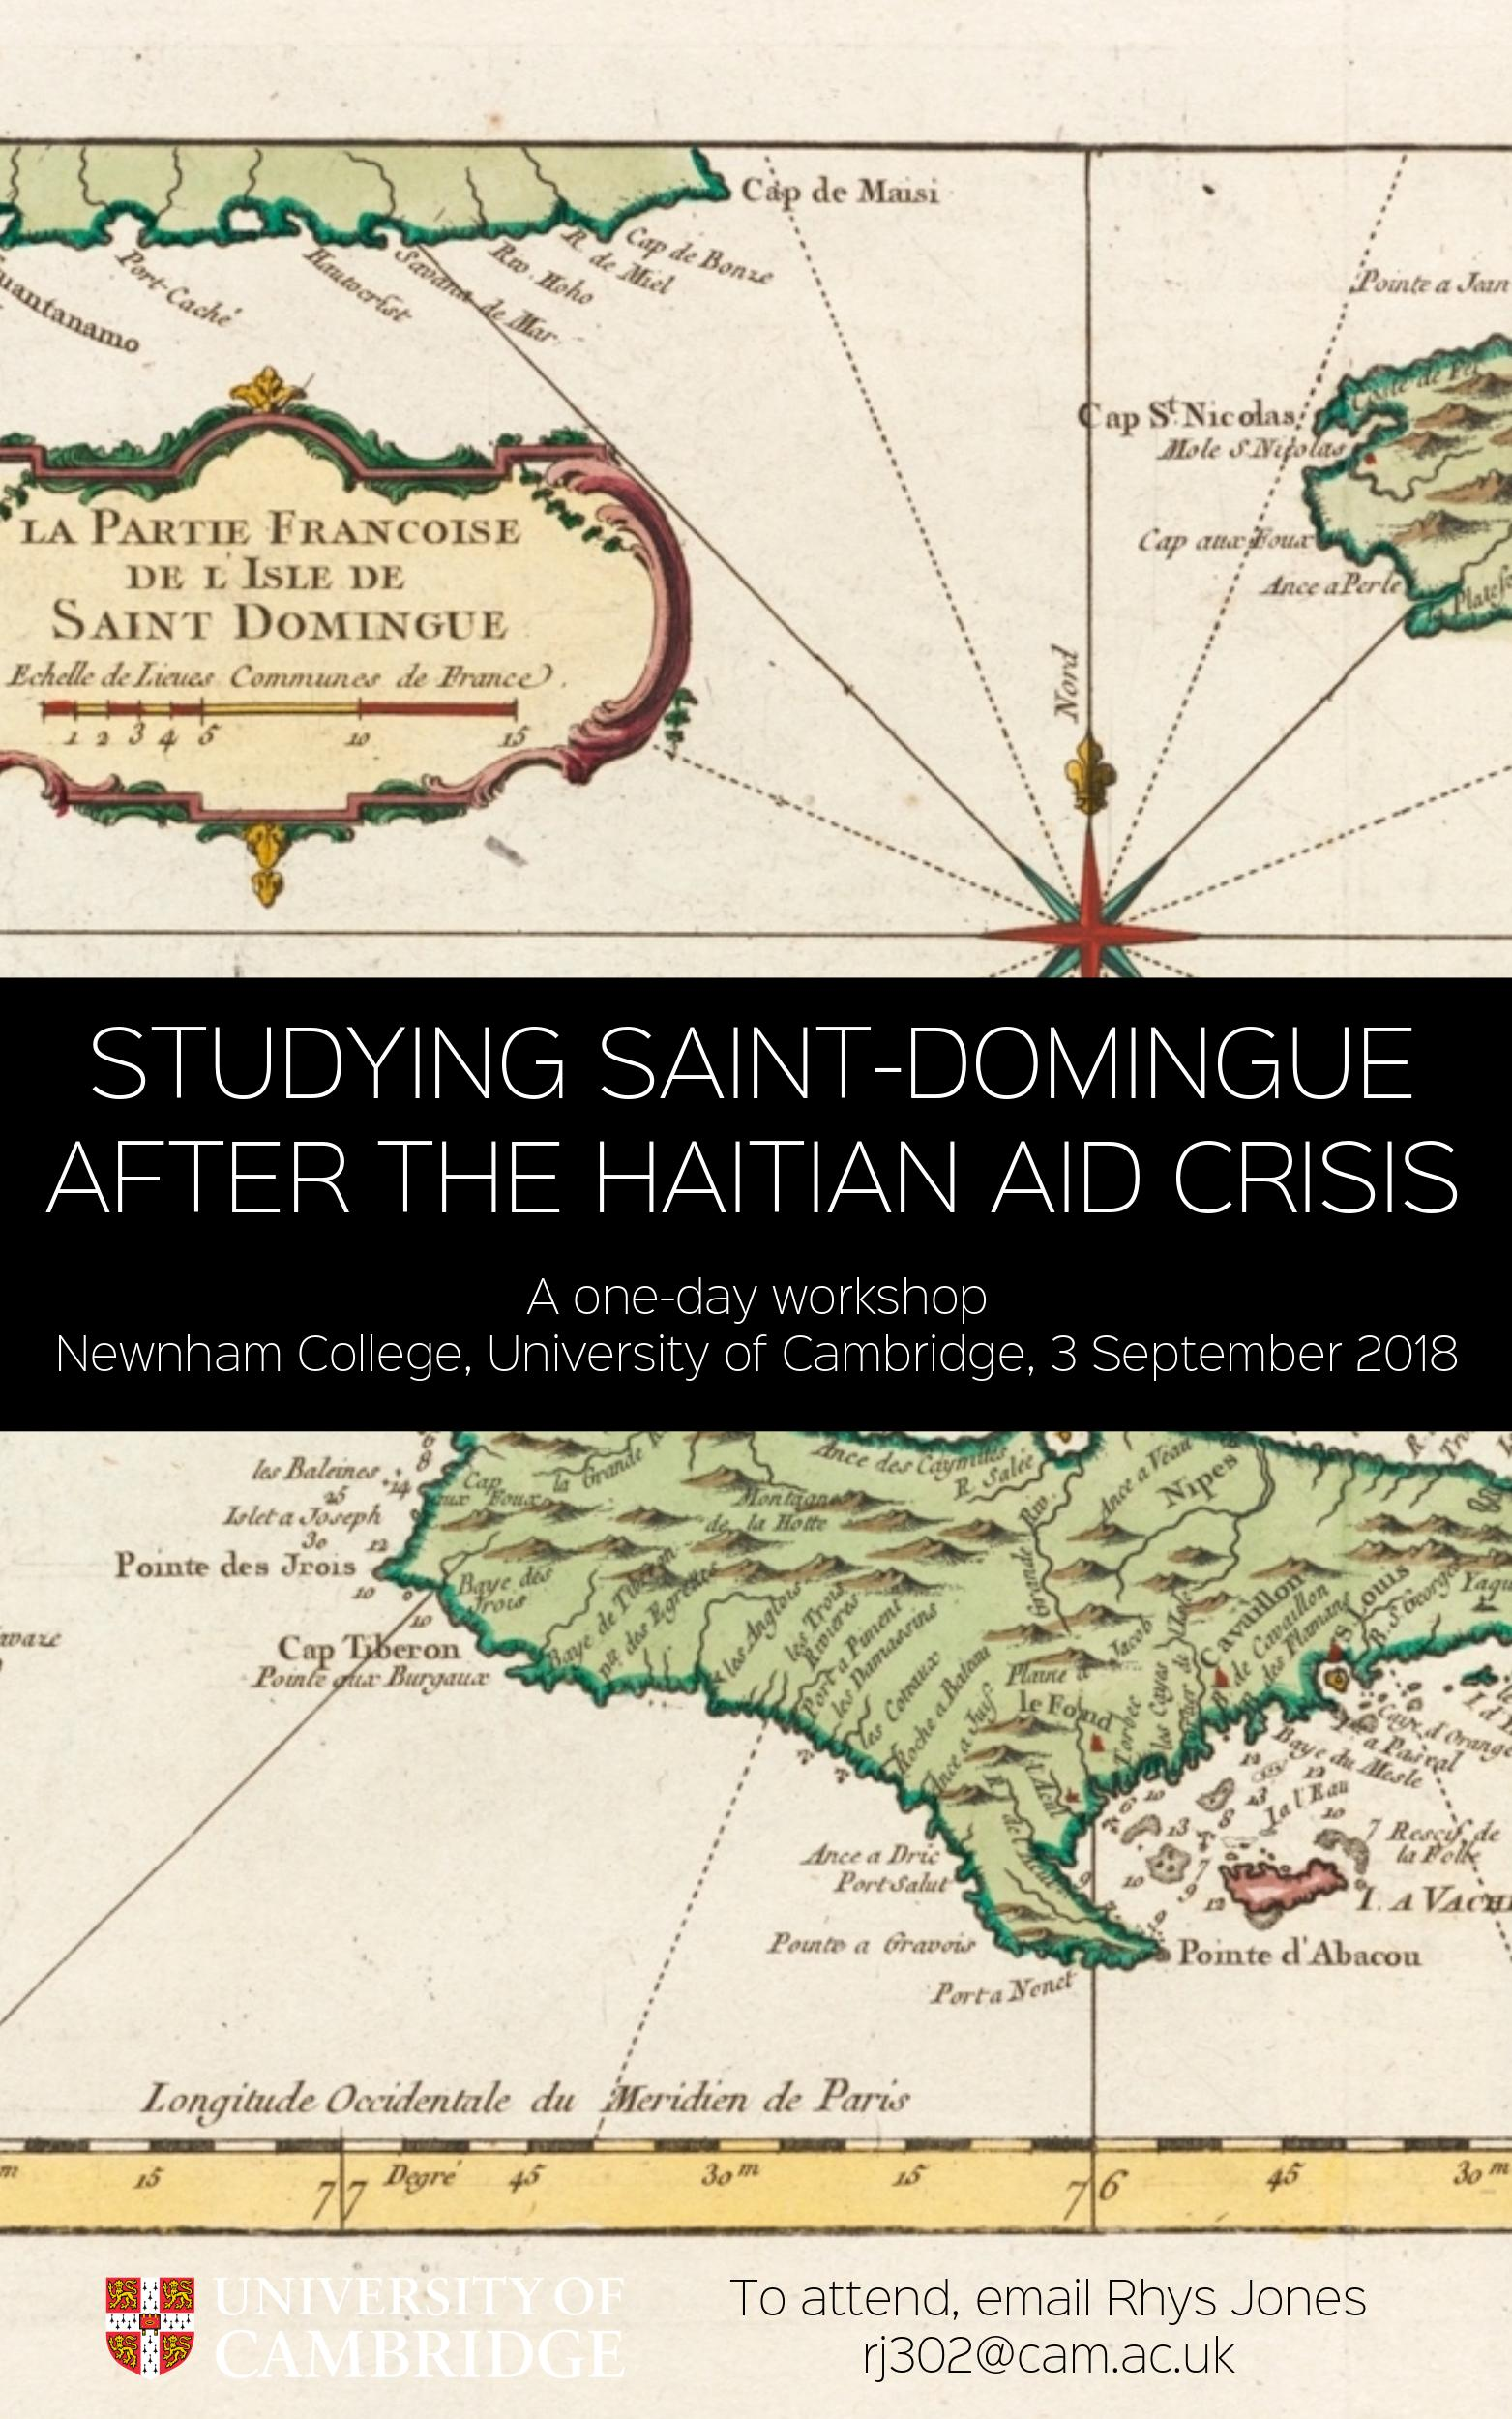 Studying Saint-Domingue after the Haitian Aid Crisis